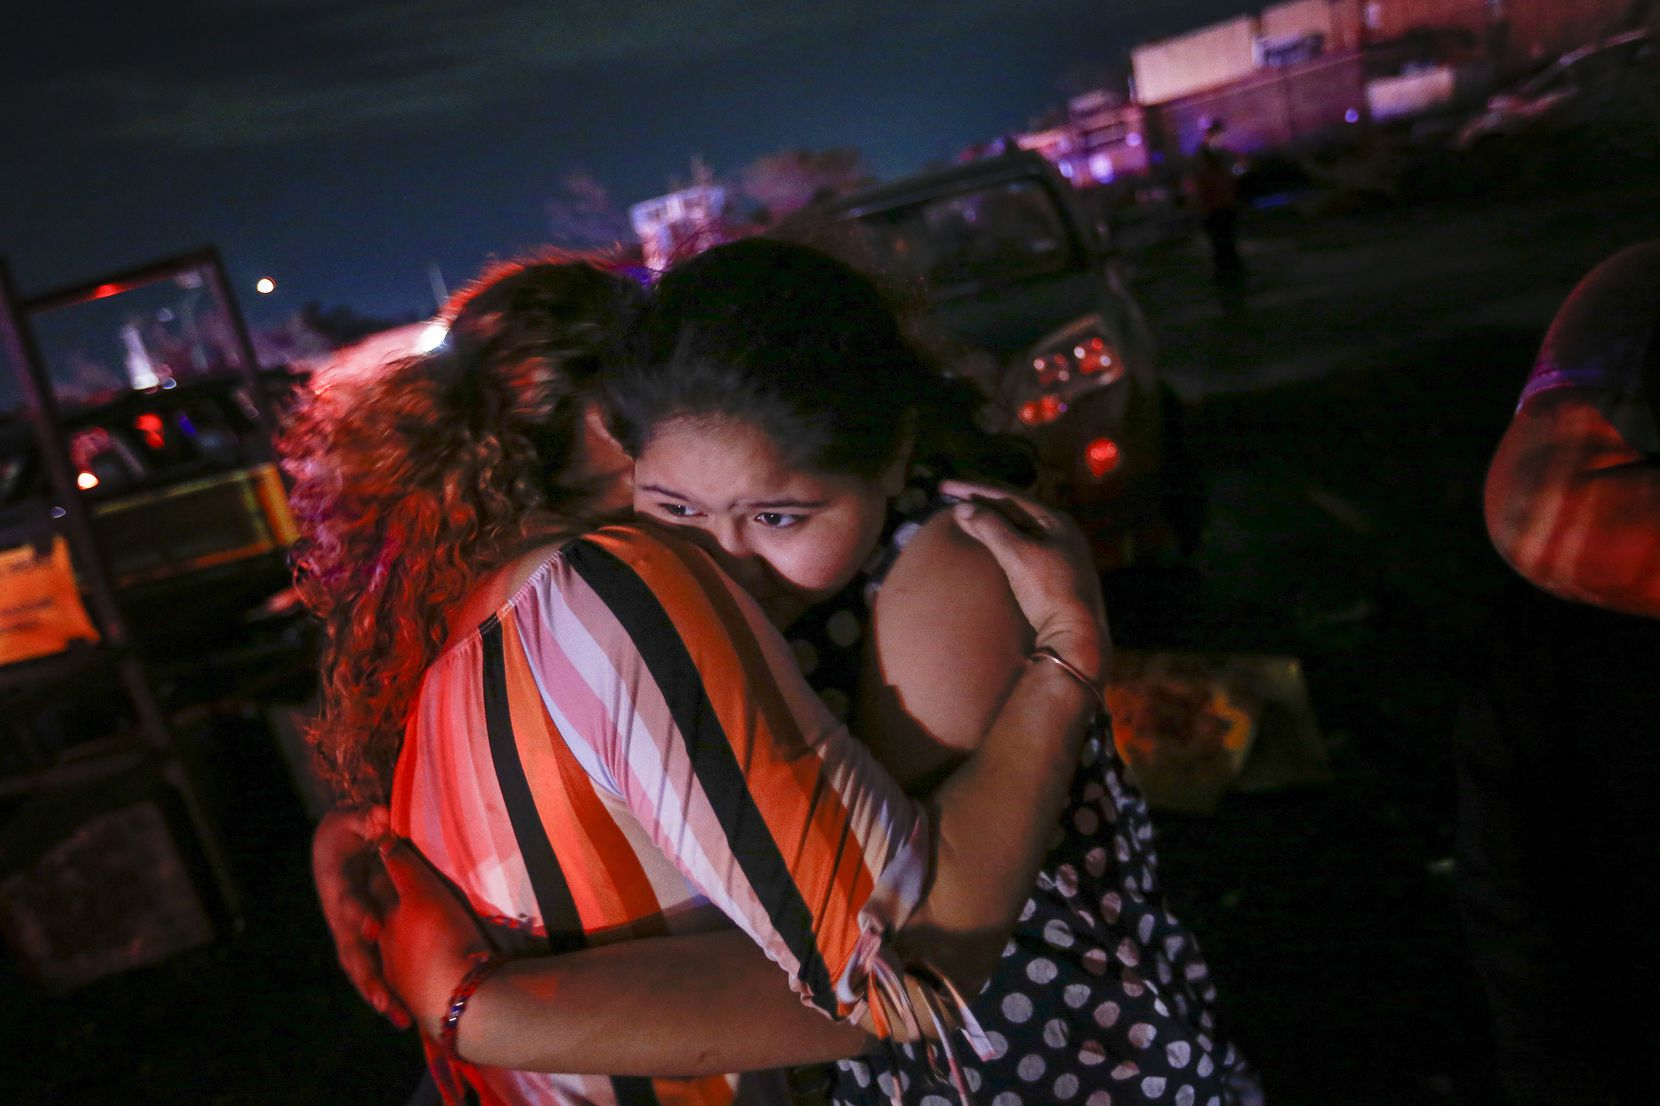 """Allisson Landeros, 11, hugs her aunt Maria Lara in the parking lot of a shopping center near the intersection of Walnut Hill Lane and Marsh Lane in Dallas where a storm hit Sunday, Oct. 20, 2019. Allisson was in the shopping center with other family members when the storm hit. """"We were measuring our dresses for tomorrow's picture day ... then all of the sudden we were in the middle of the storm ... and everything started collapsing,"""" she said.  (Ryan Michalesko/The Dallas Morning News)"""